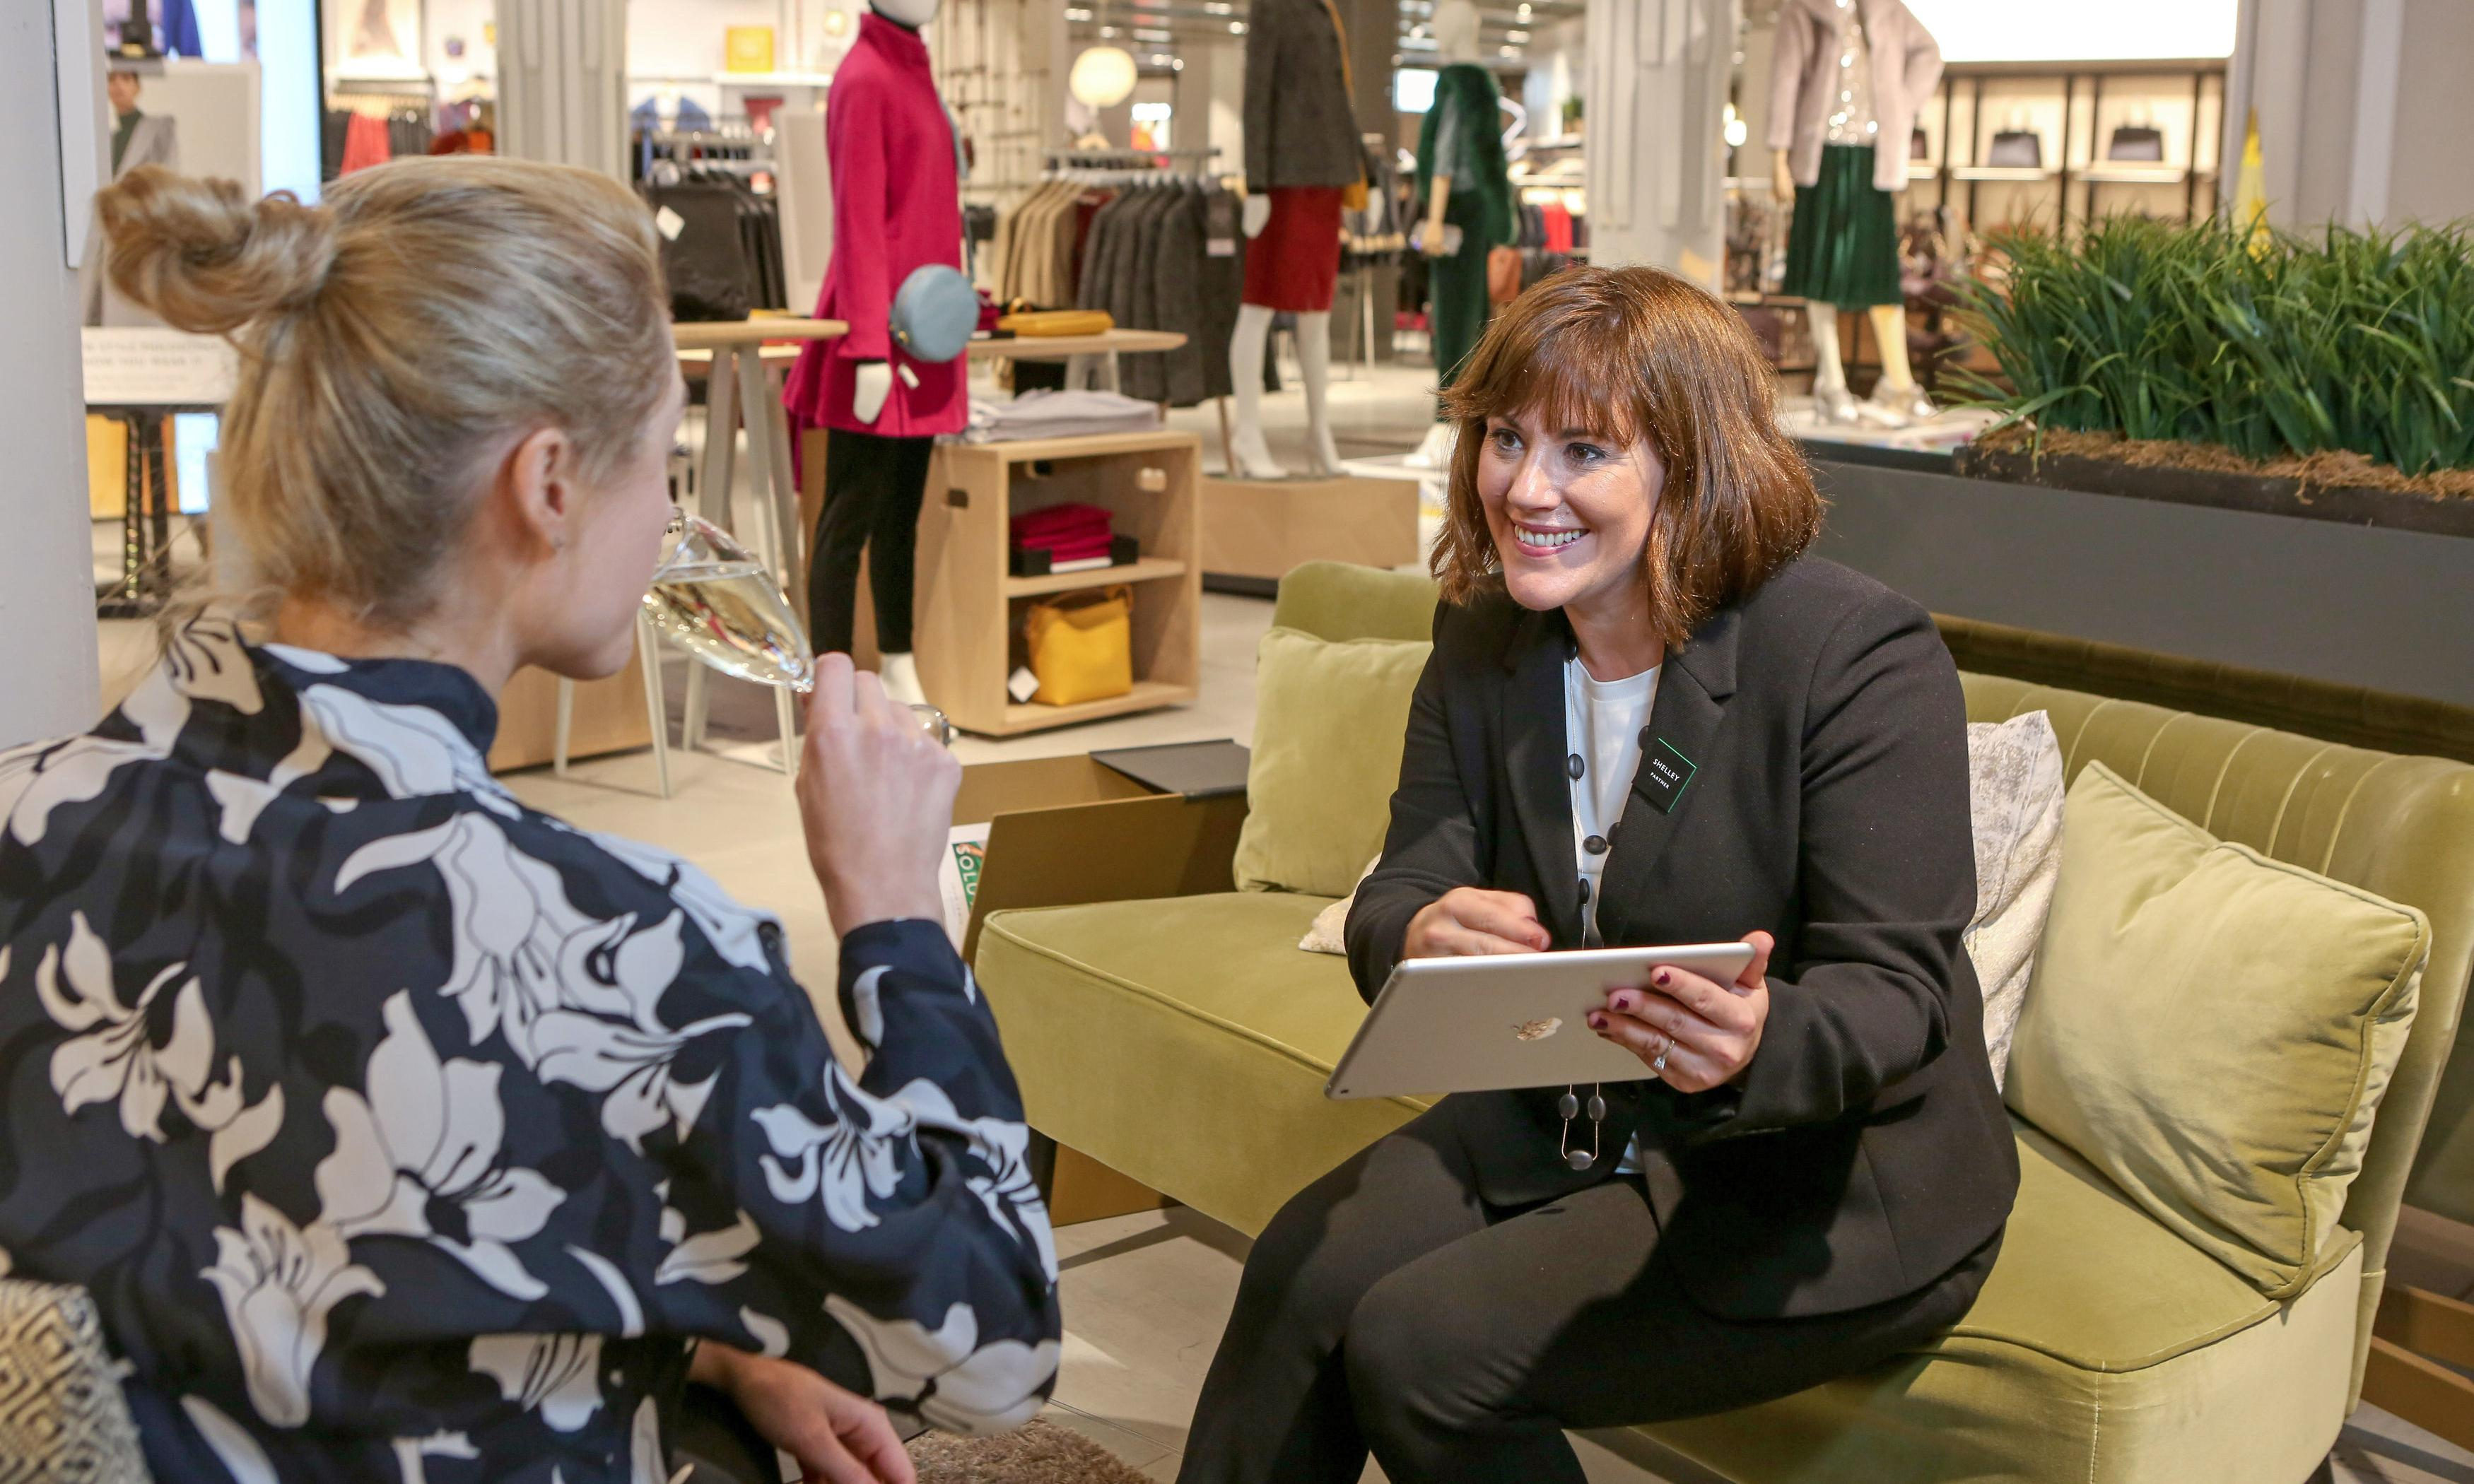 John Lewis to launch £10,000 'private shopping' service